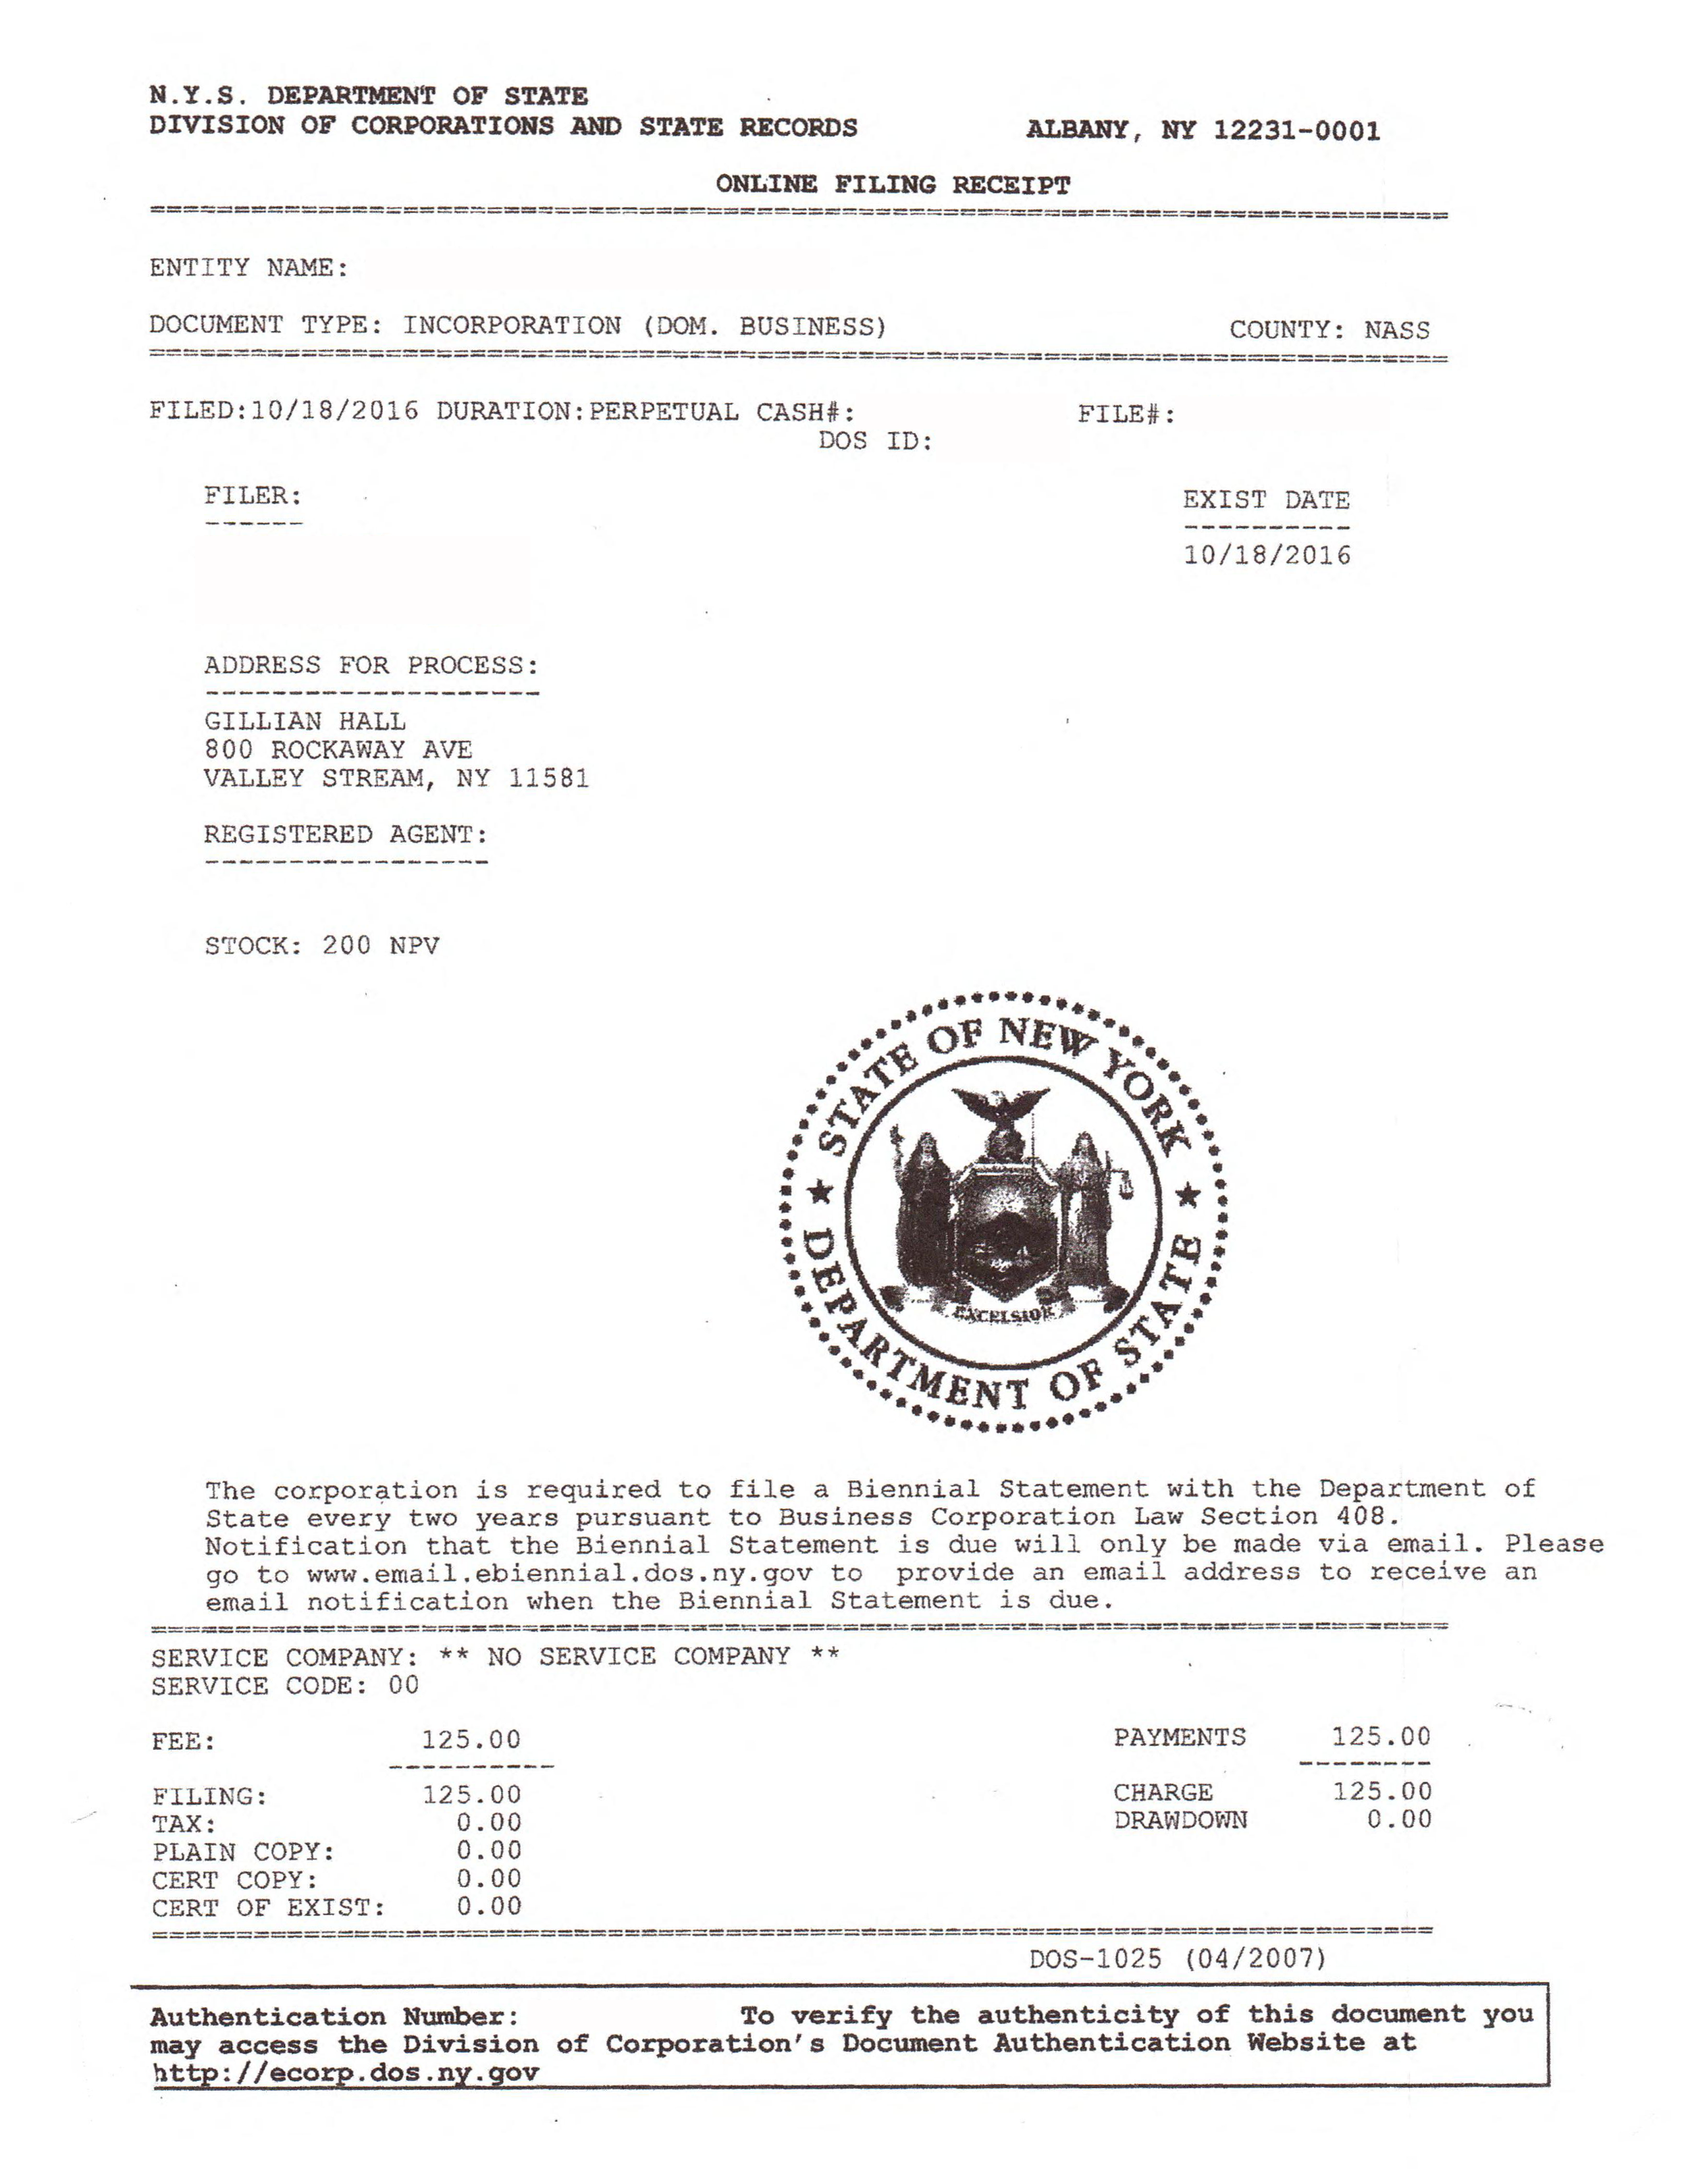 The company name listed on this  NYS filing receipt  must match the name we are registering with the DOT.